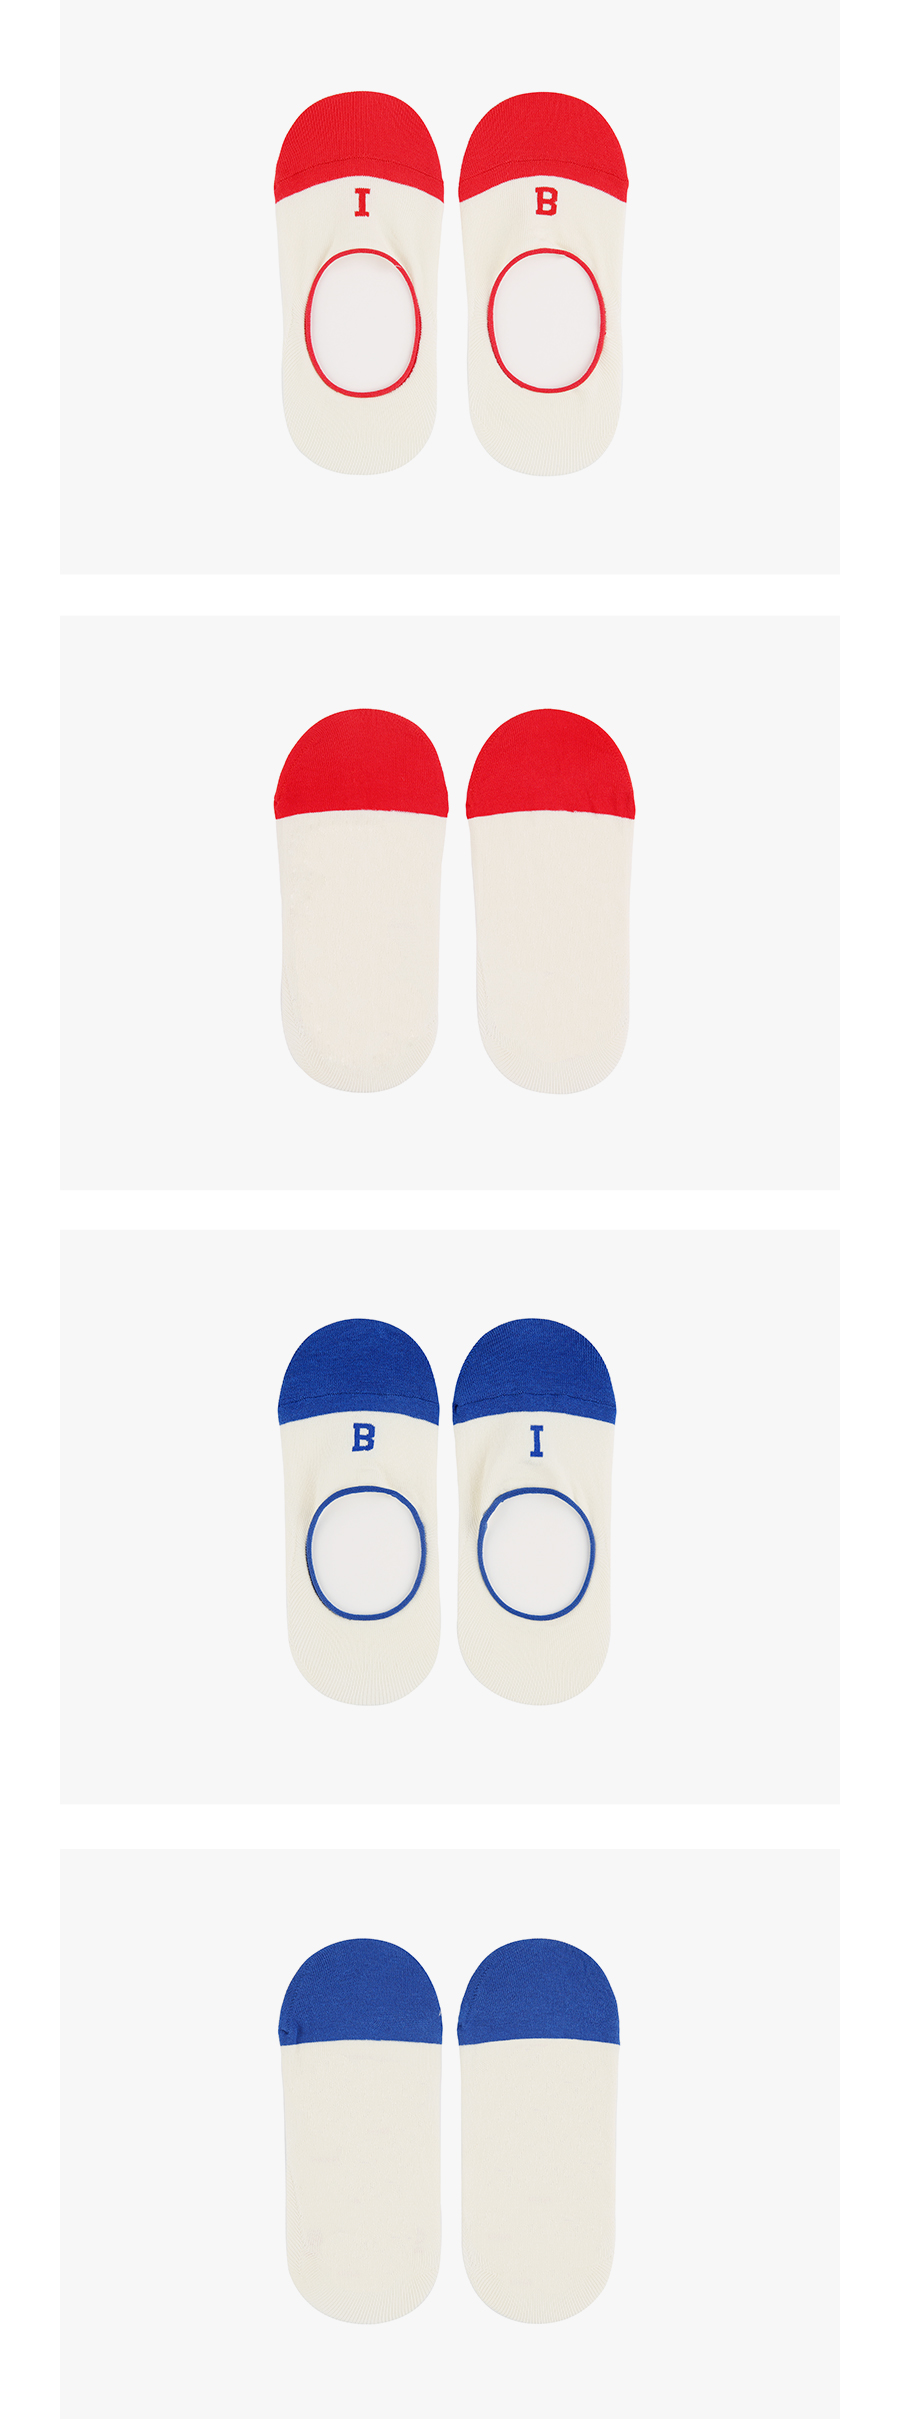 IB Foot cover socks 상세 이미지